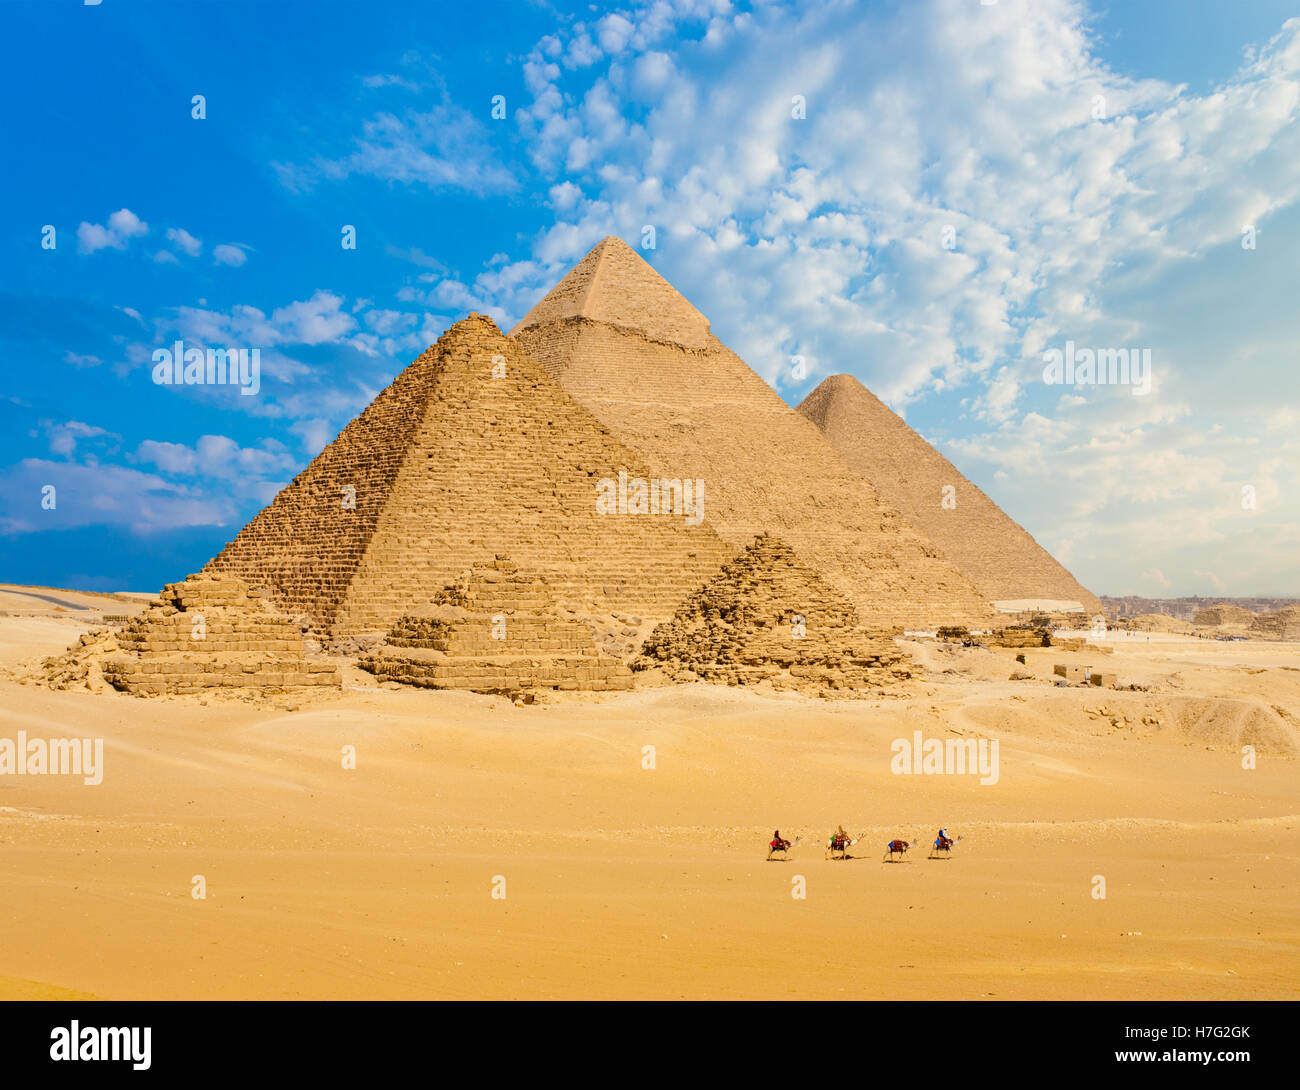 All Egyptian Pyramids from distance with row of camels walking in foreground in Giza, Cairo, Egypt.  Wide telephoto - Stock Image